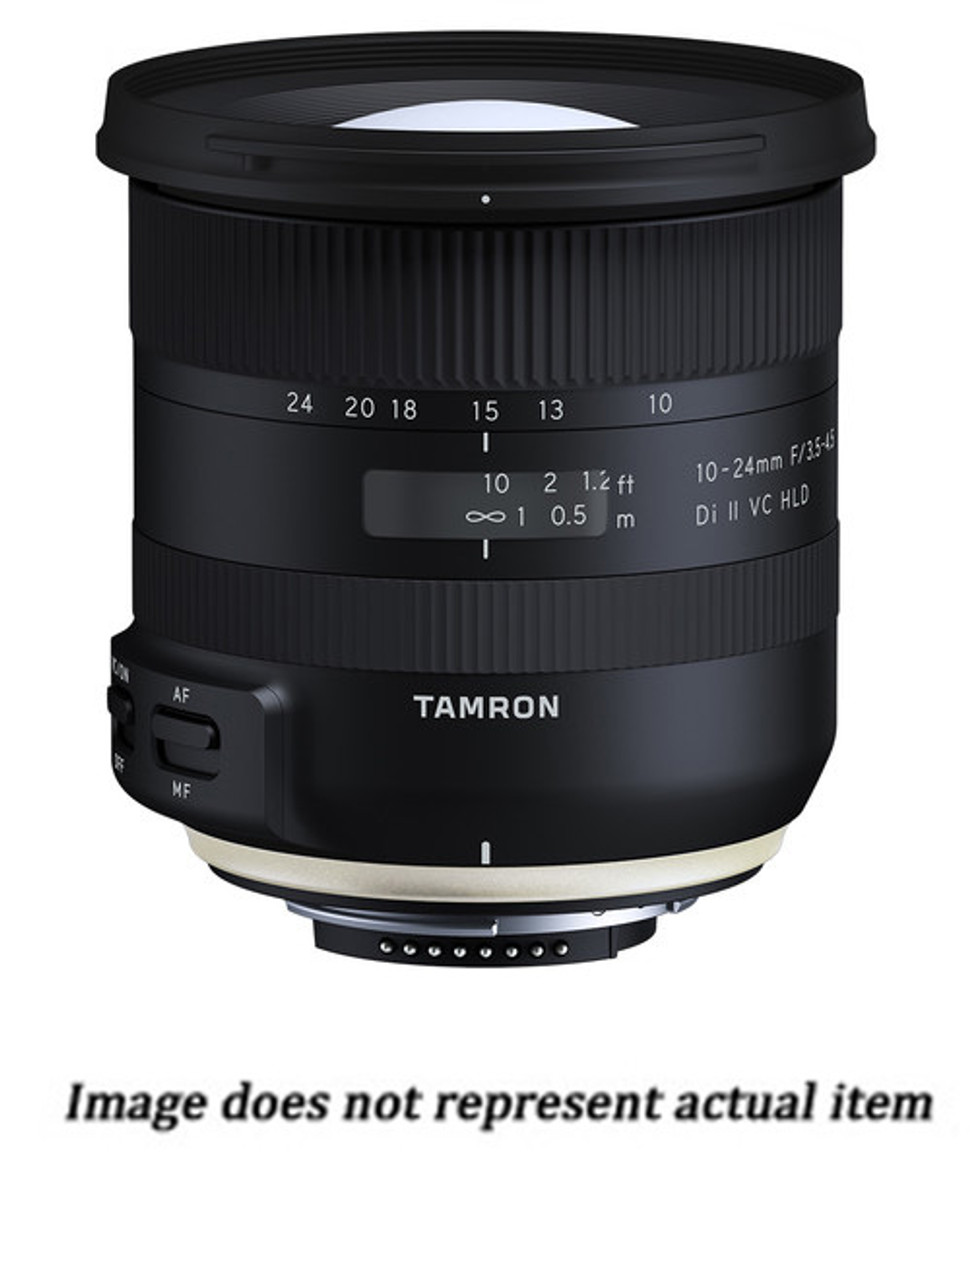 Tamron 10-24mm f/3.5-4.5 Di II VC HLD Lens for Canon (USED) - S/N 003832